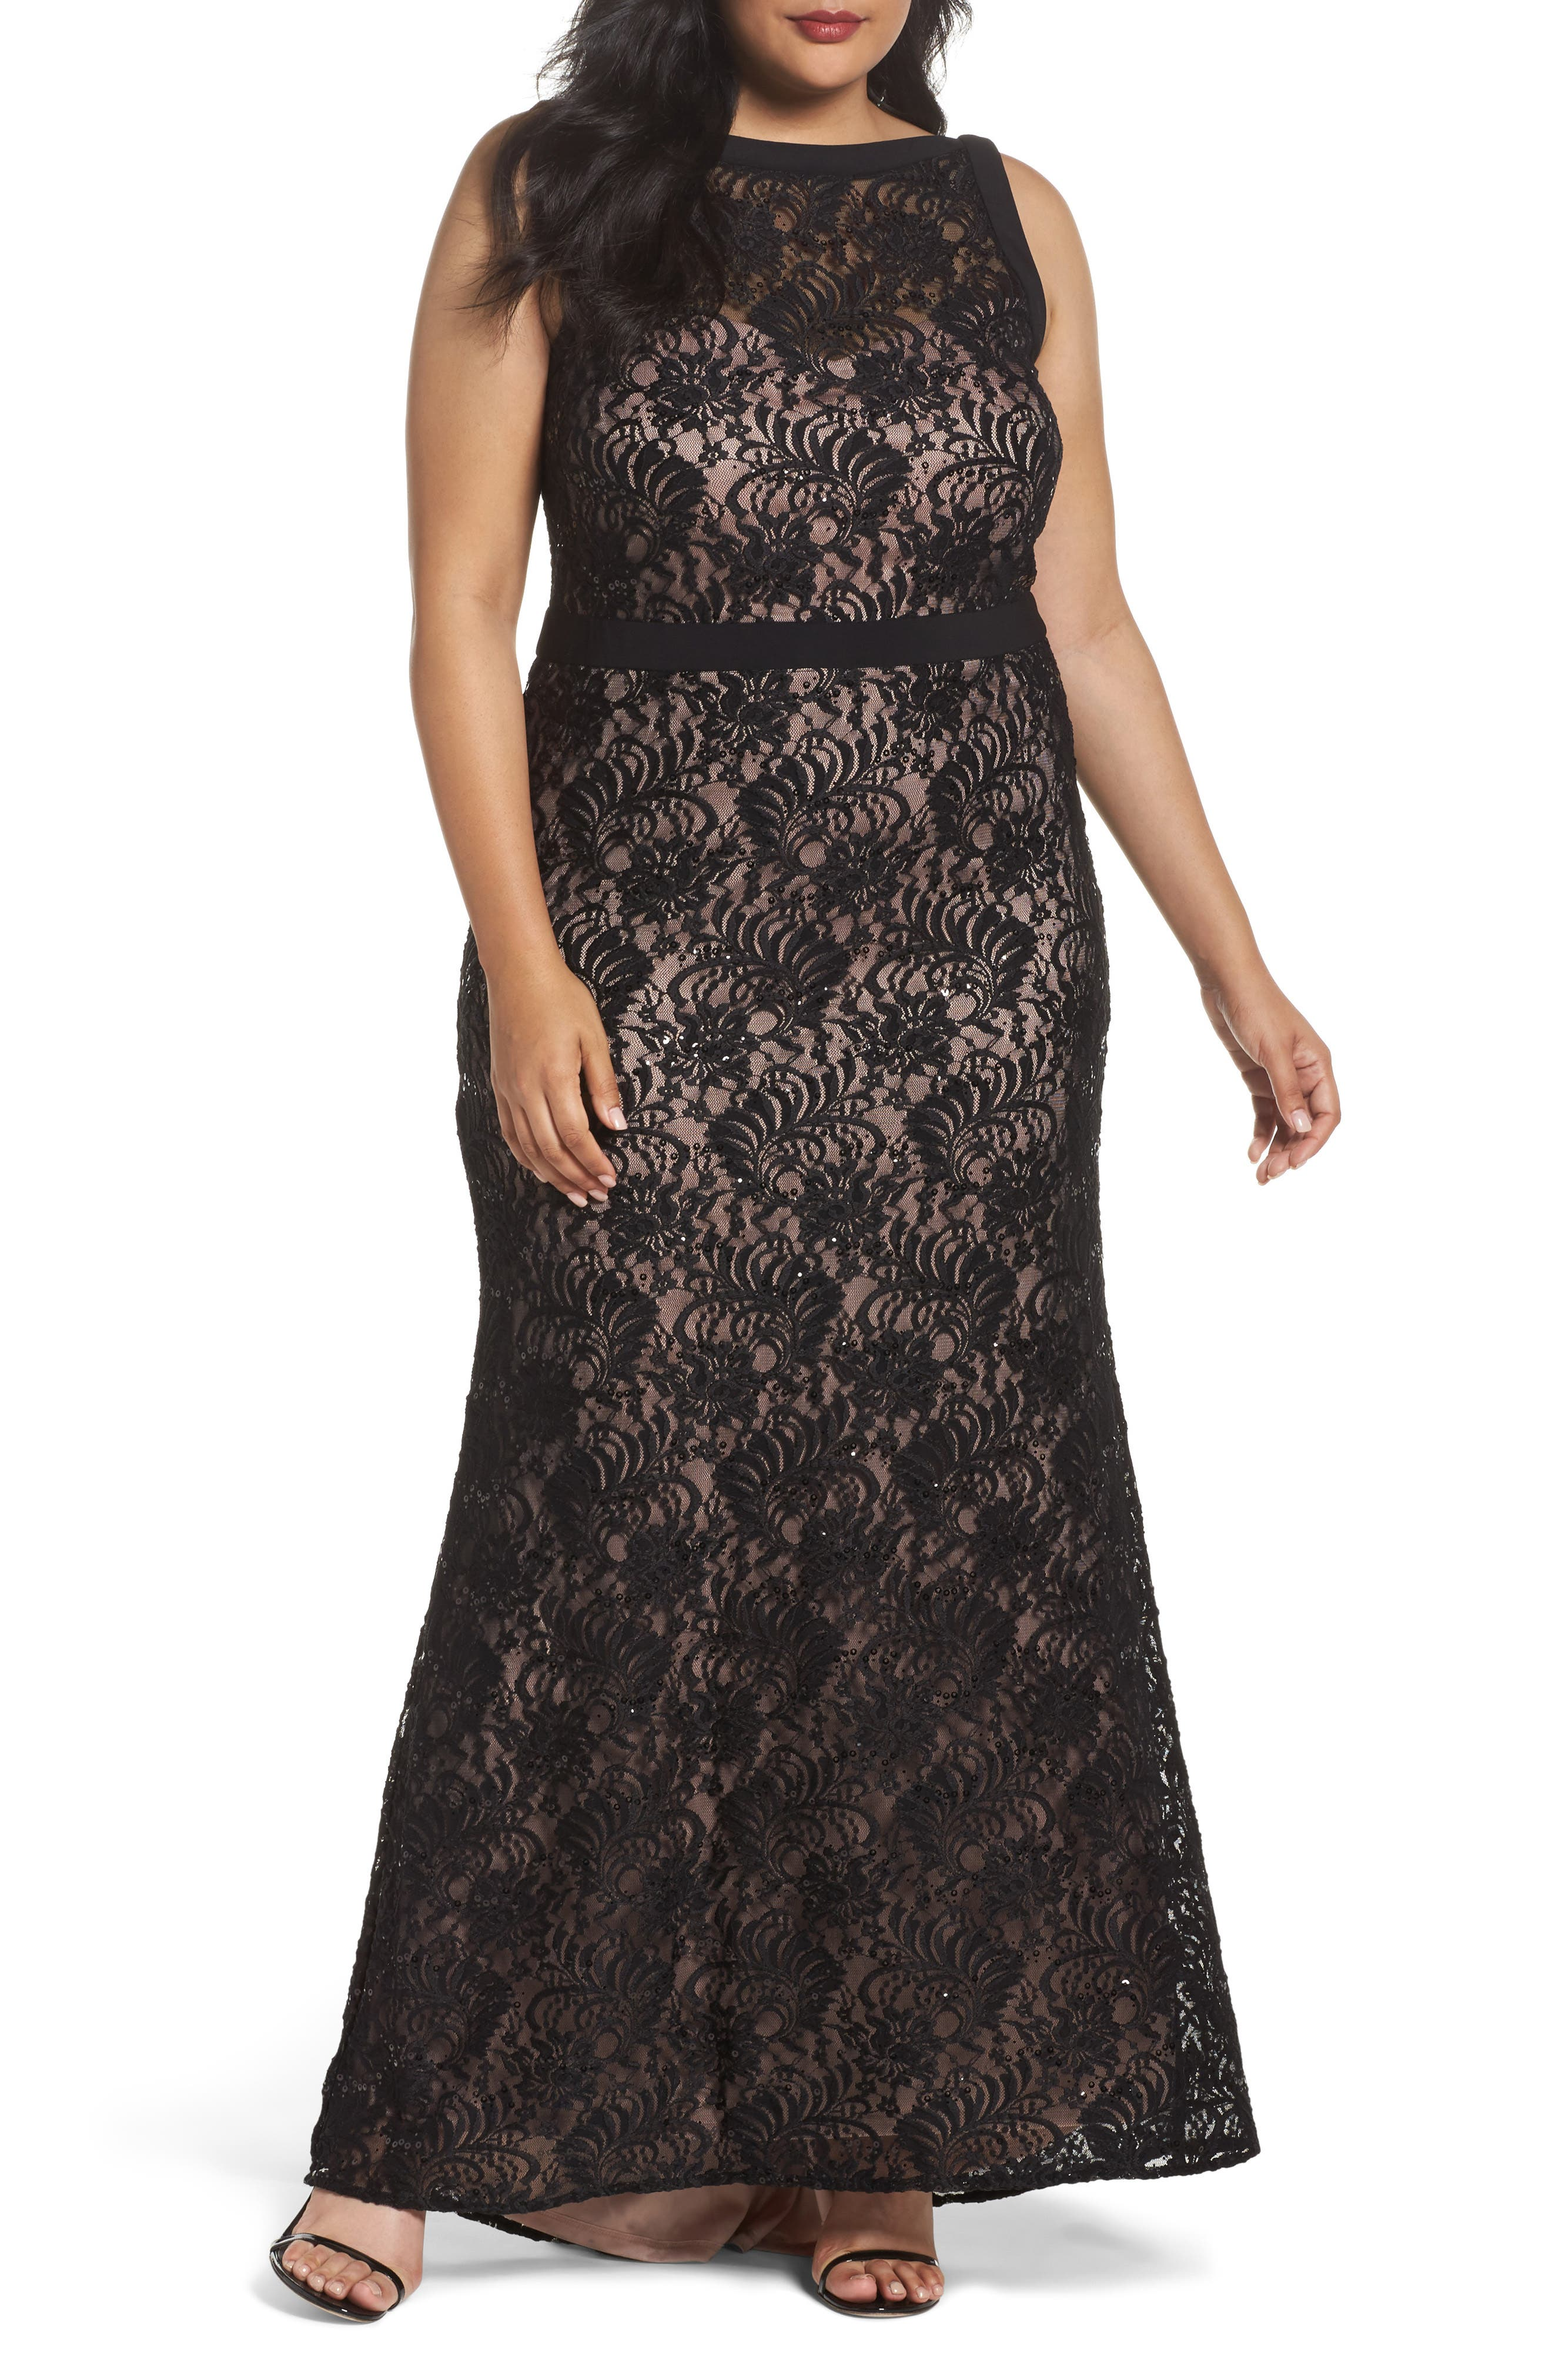 Alternate Image 1 Selected - Morgan & Co. Lace Square Neck Gown (Plus Size)